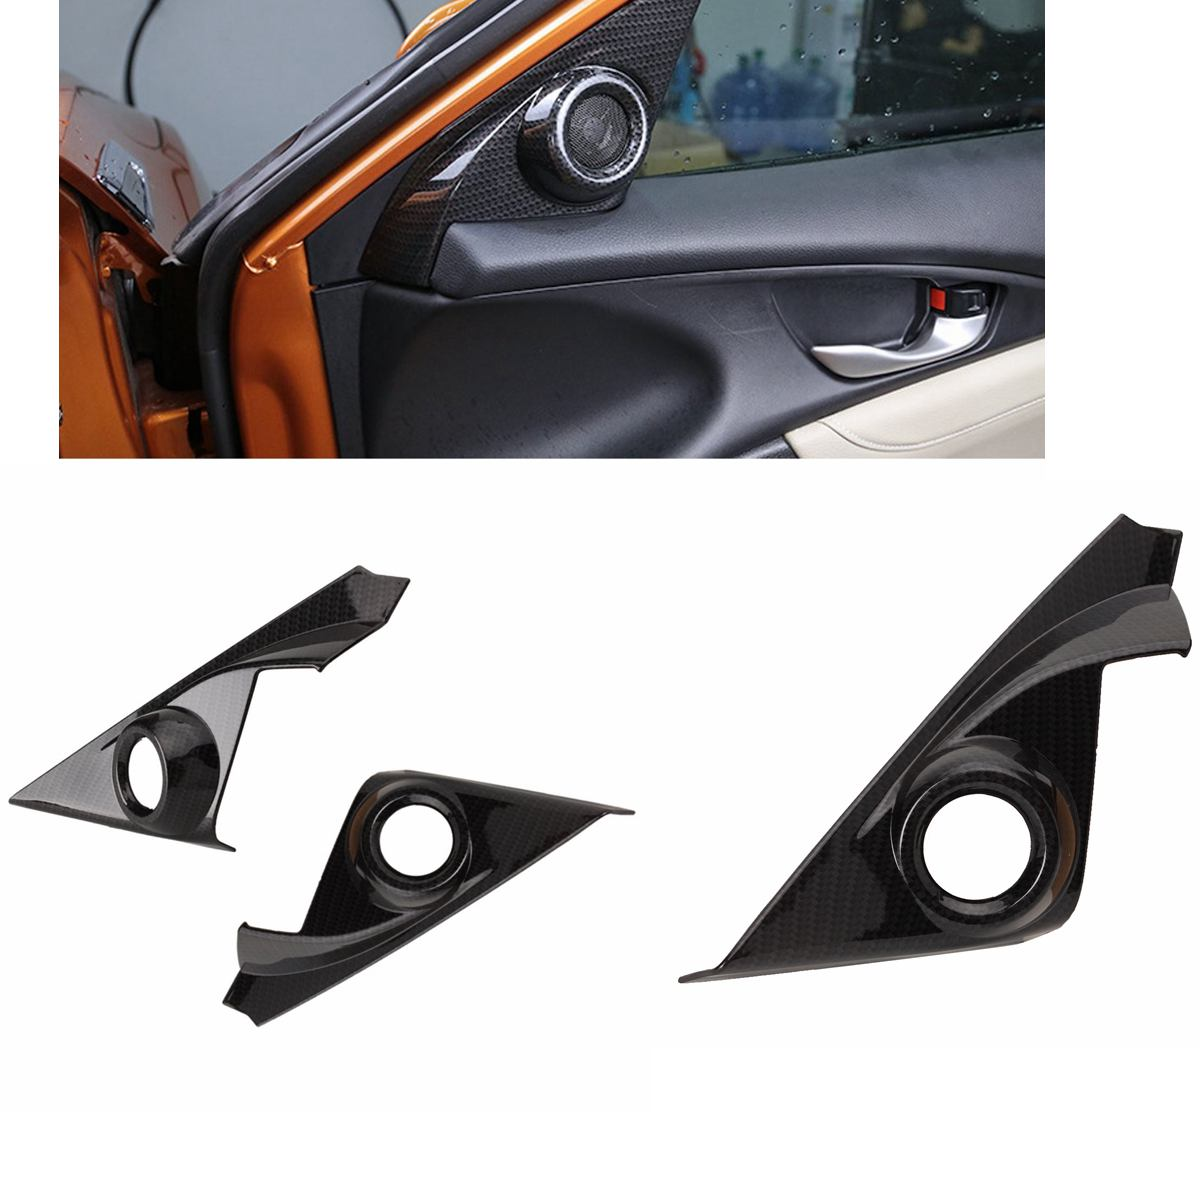 Carbon Fiber Style Rear Water Cup Panel Frame Trim For Honda Civic 2016-2017